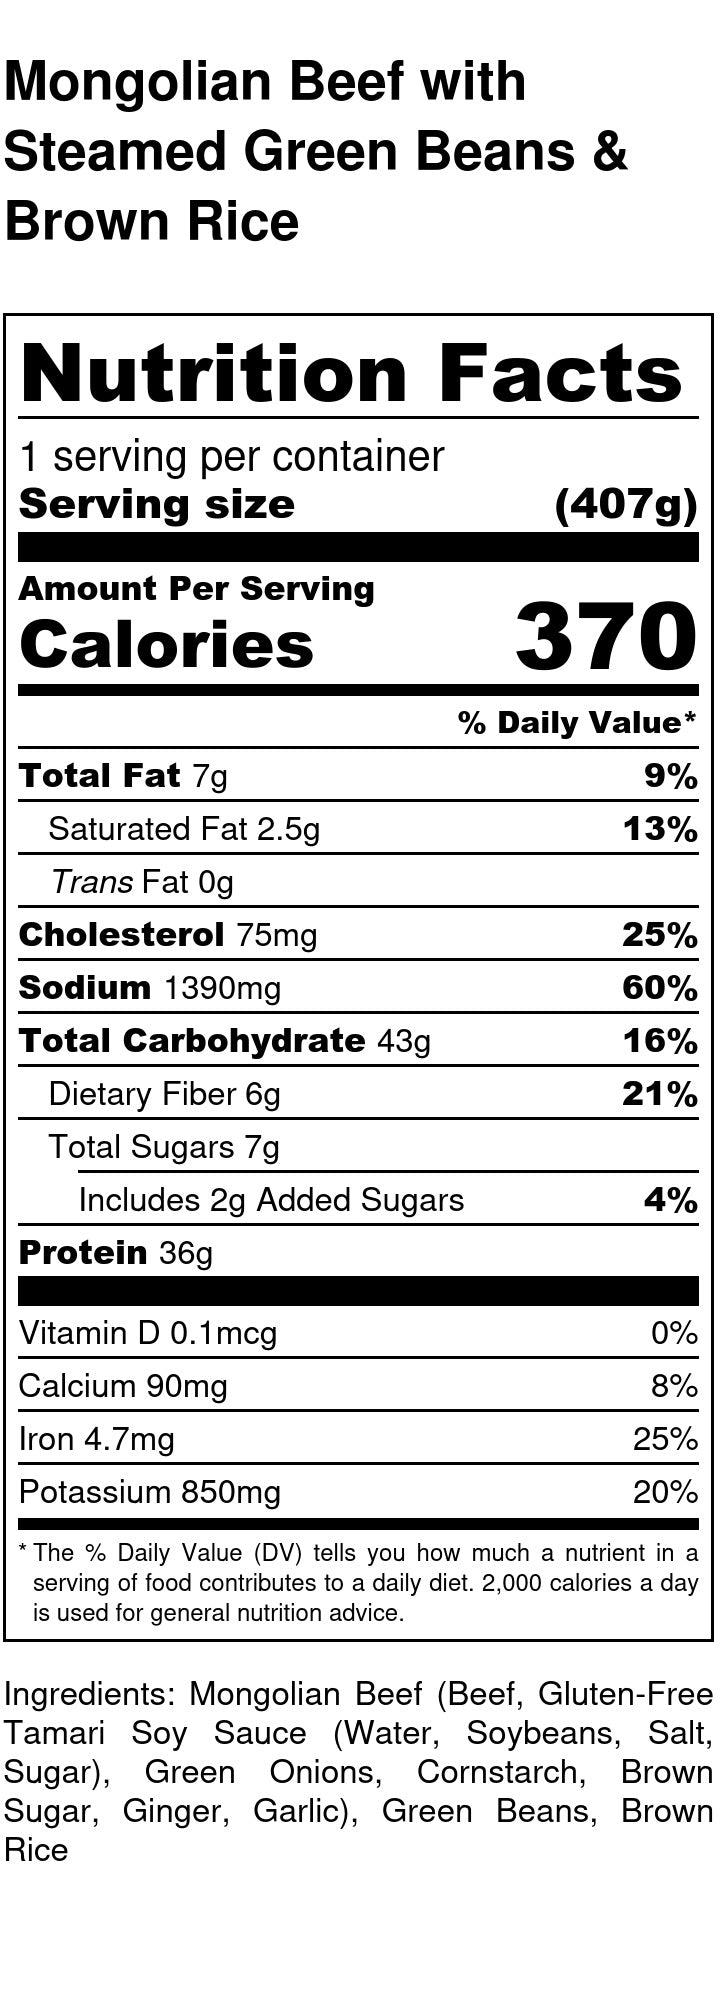 Mongolian Beef Nutrition Facts